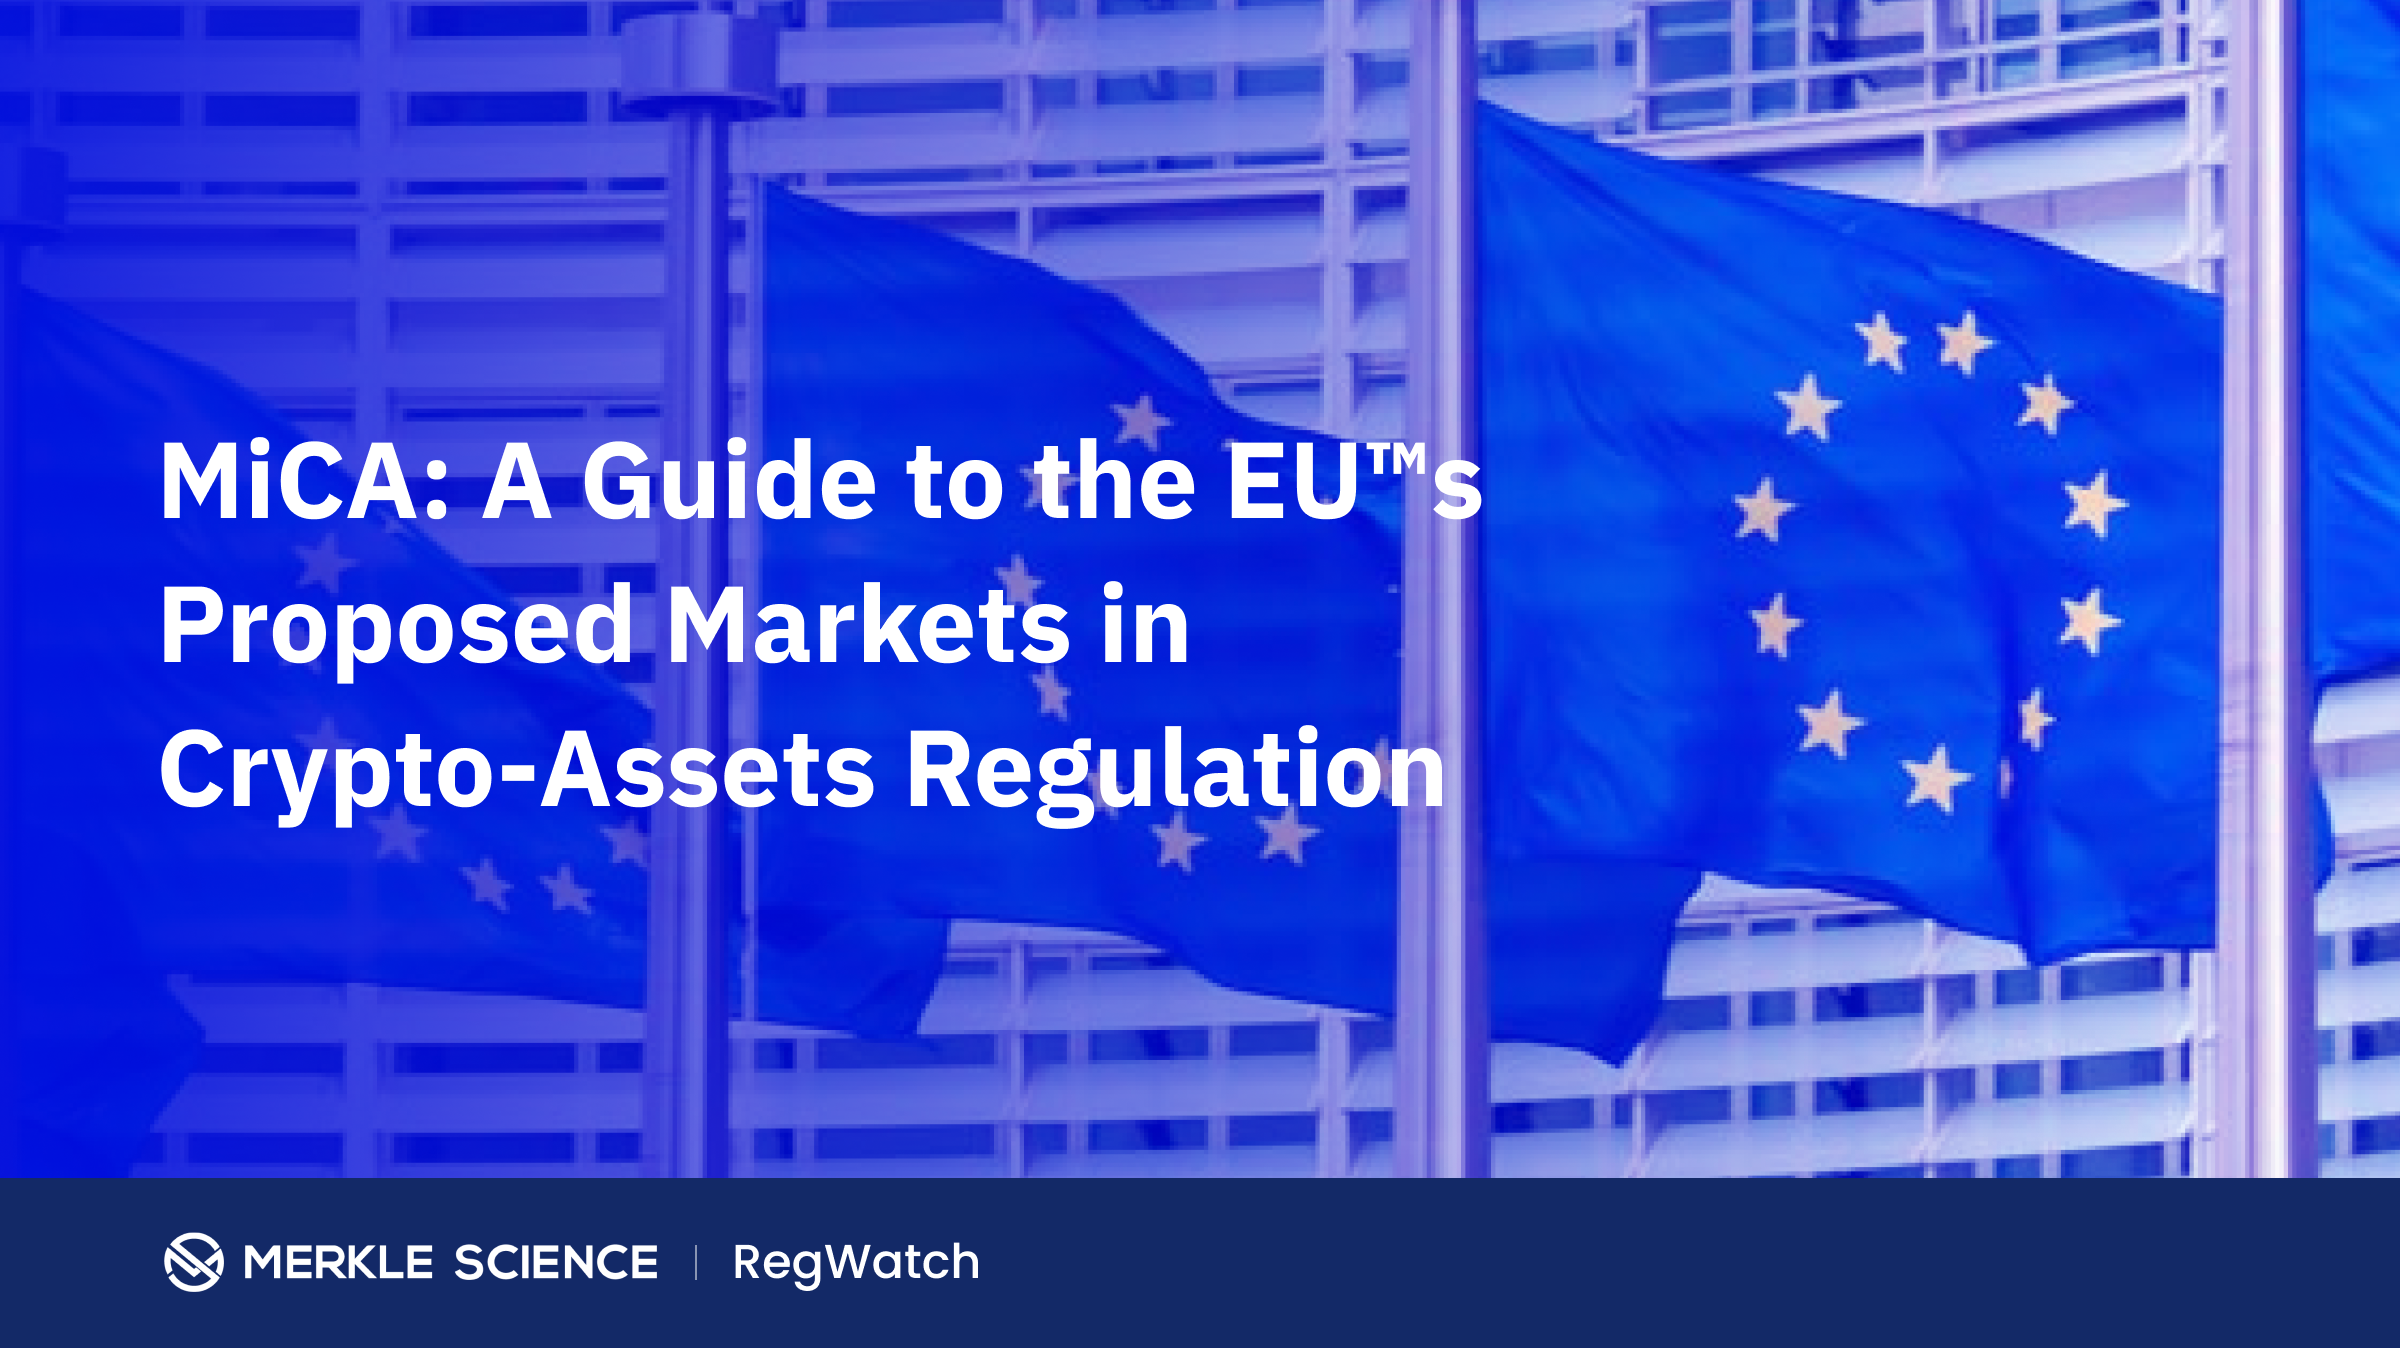 MiCA: A Guide to the EU's Proposed Markets in Crypto-Assets Regulation